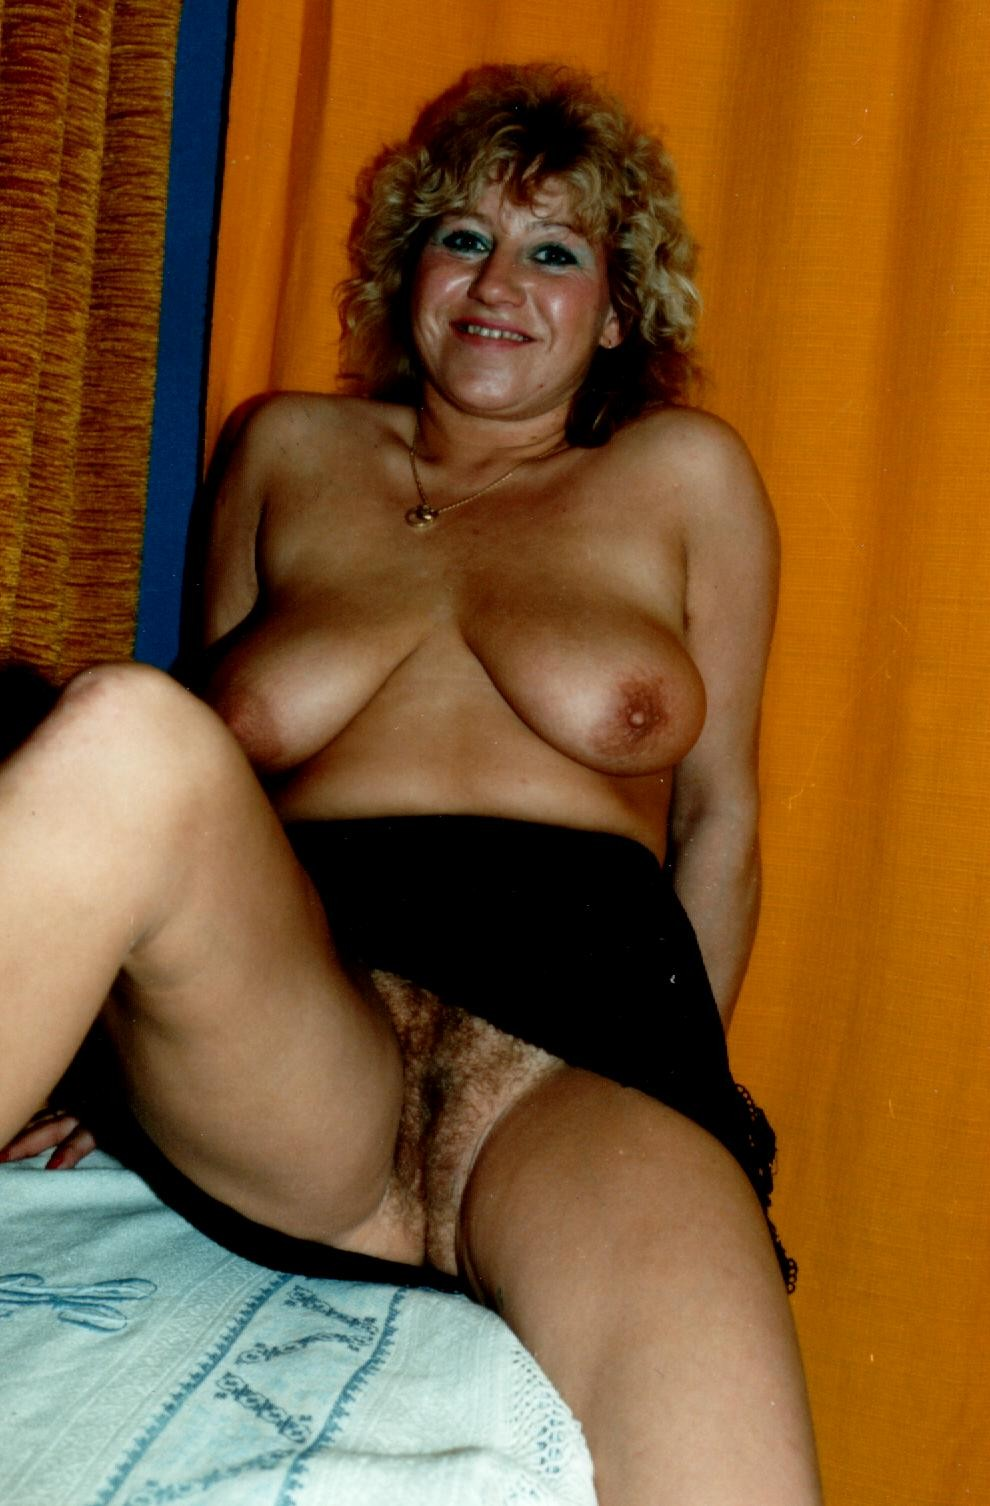 Meaty hairy spread whorish legs snatch